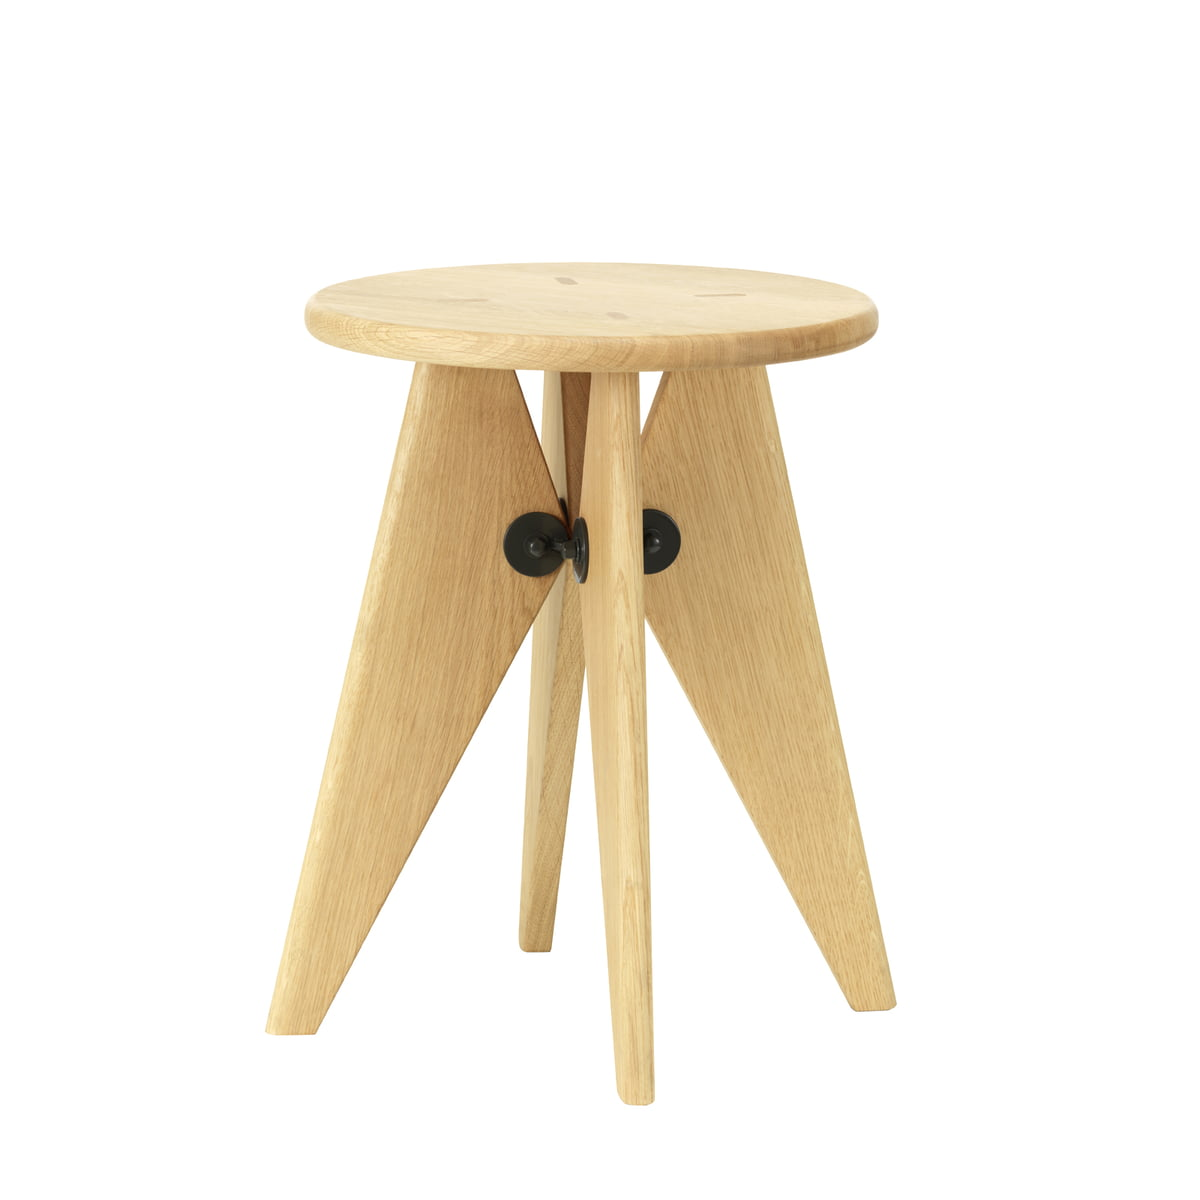 The Tabouret Solvay Stool By Vitra